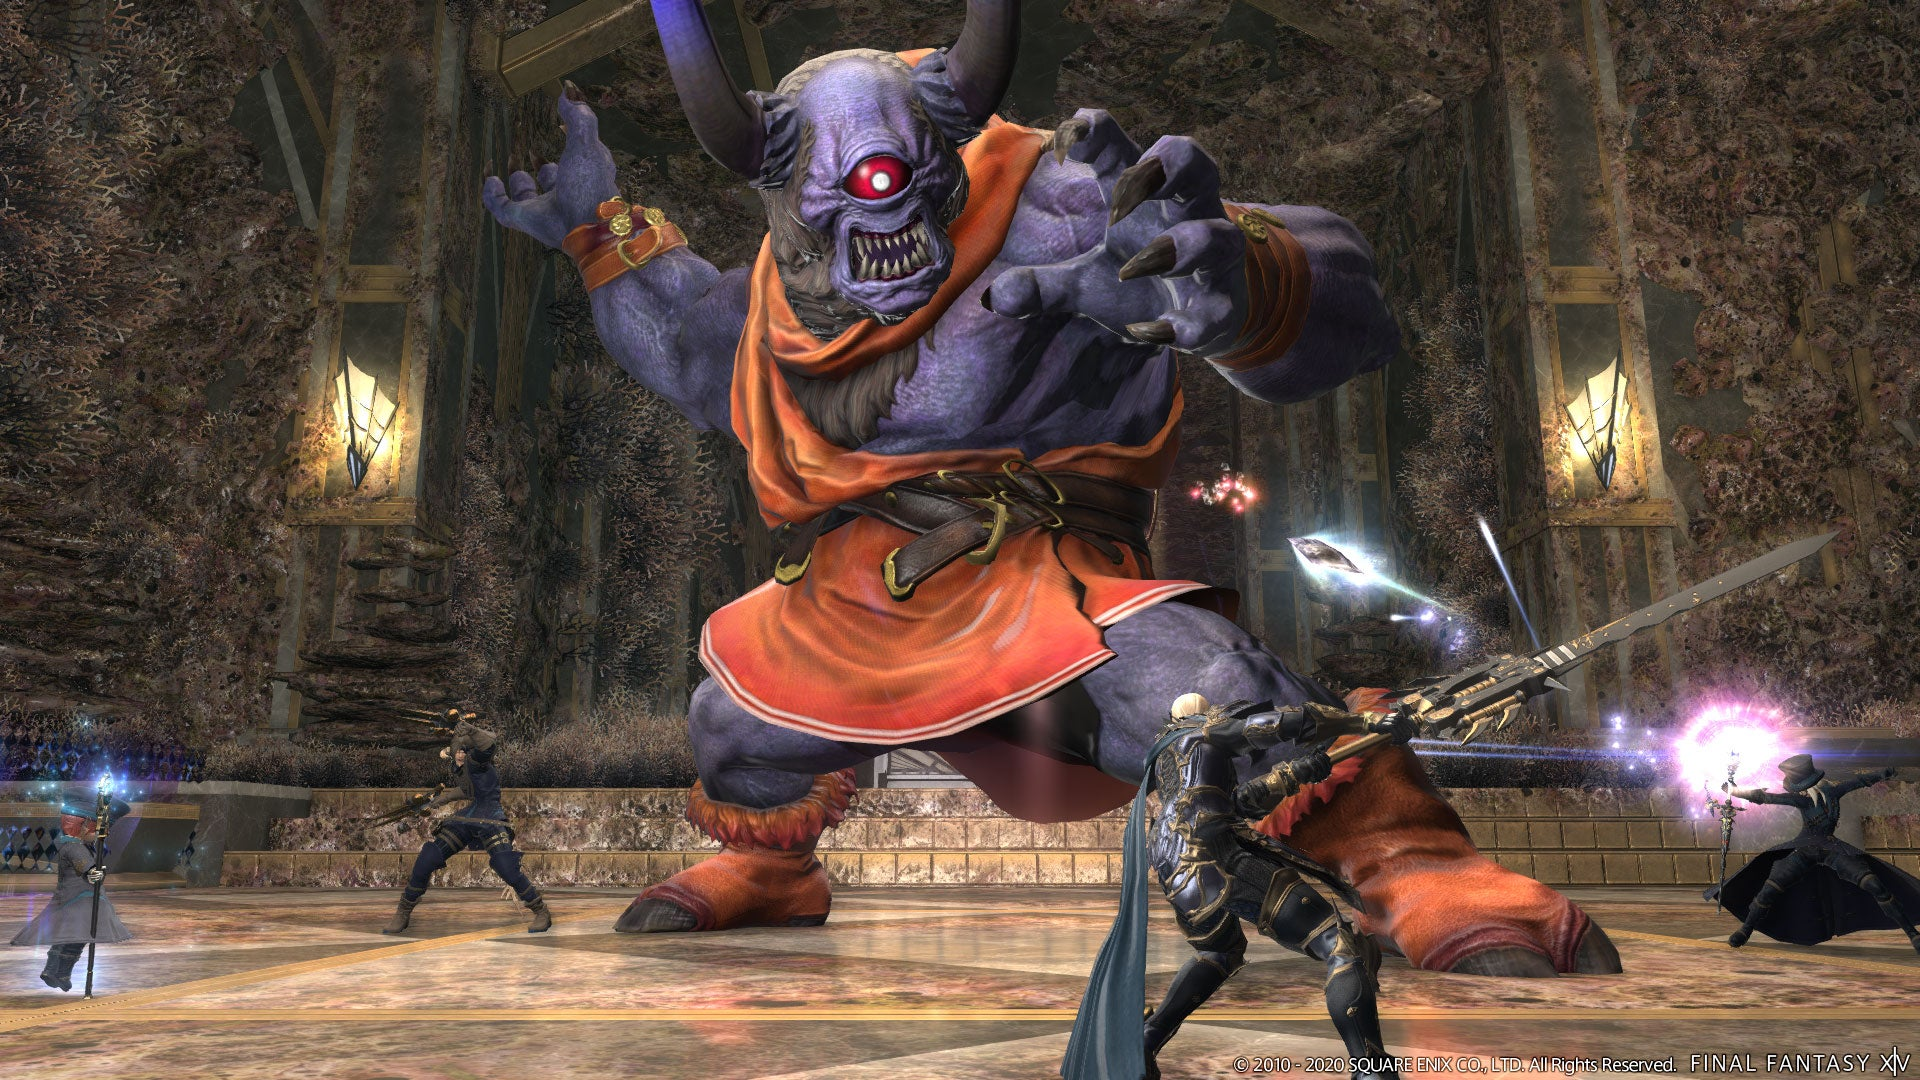 Covid-19 Concerns Delay Final Fantasy XIV's Next Big Update